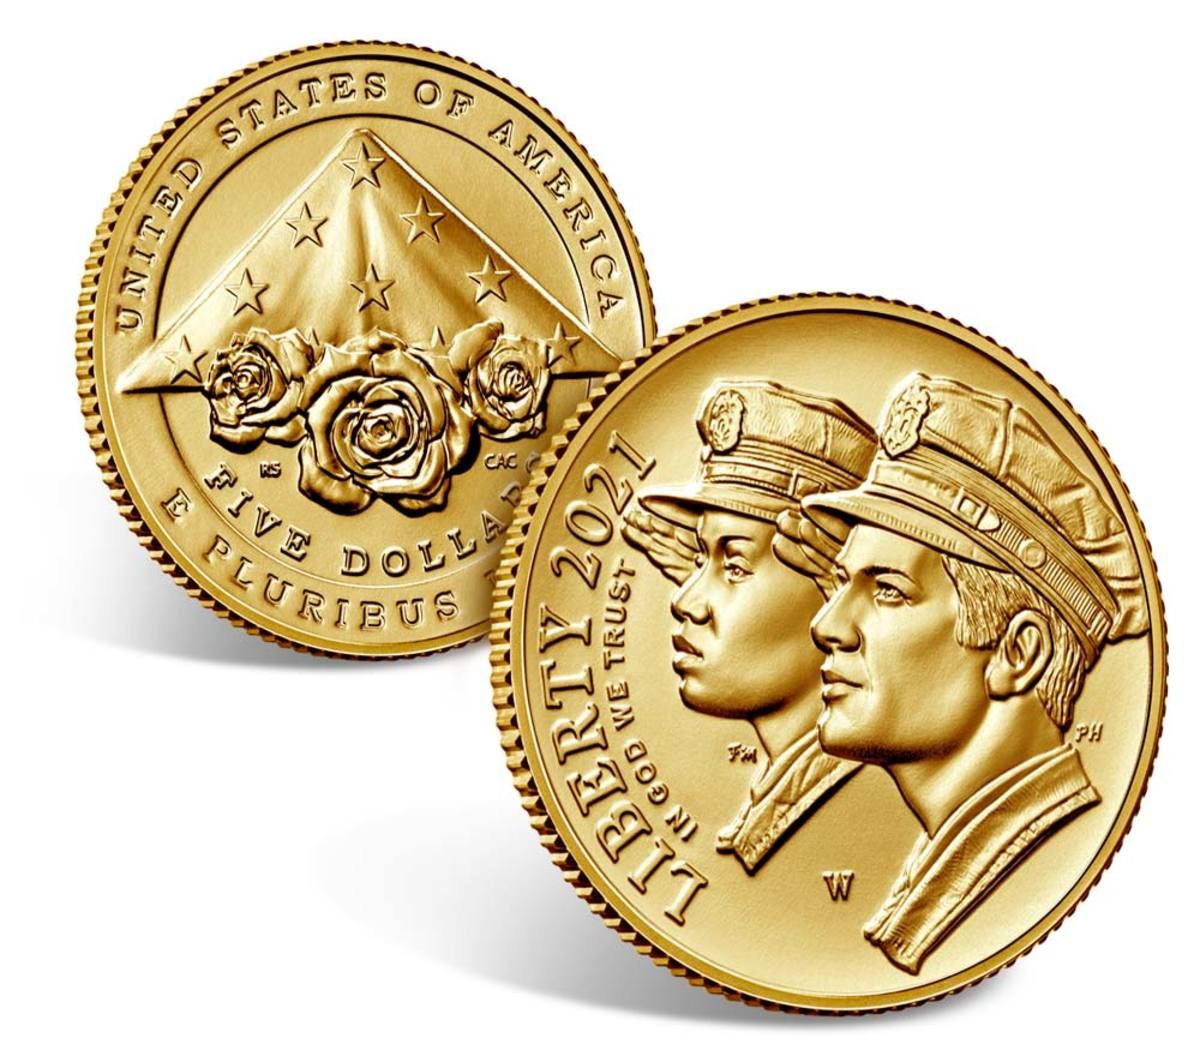 2021 $5 gold coin commemorating the National Law Enforcement Museum and Memorial. (Image courtesy U.S. Mint.)